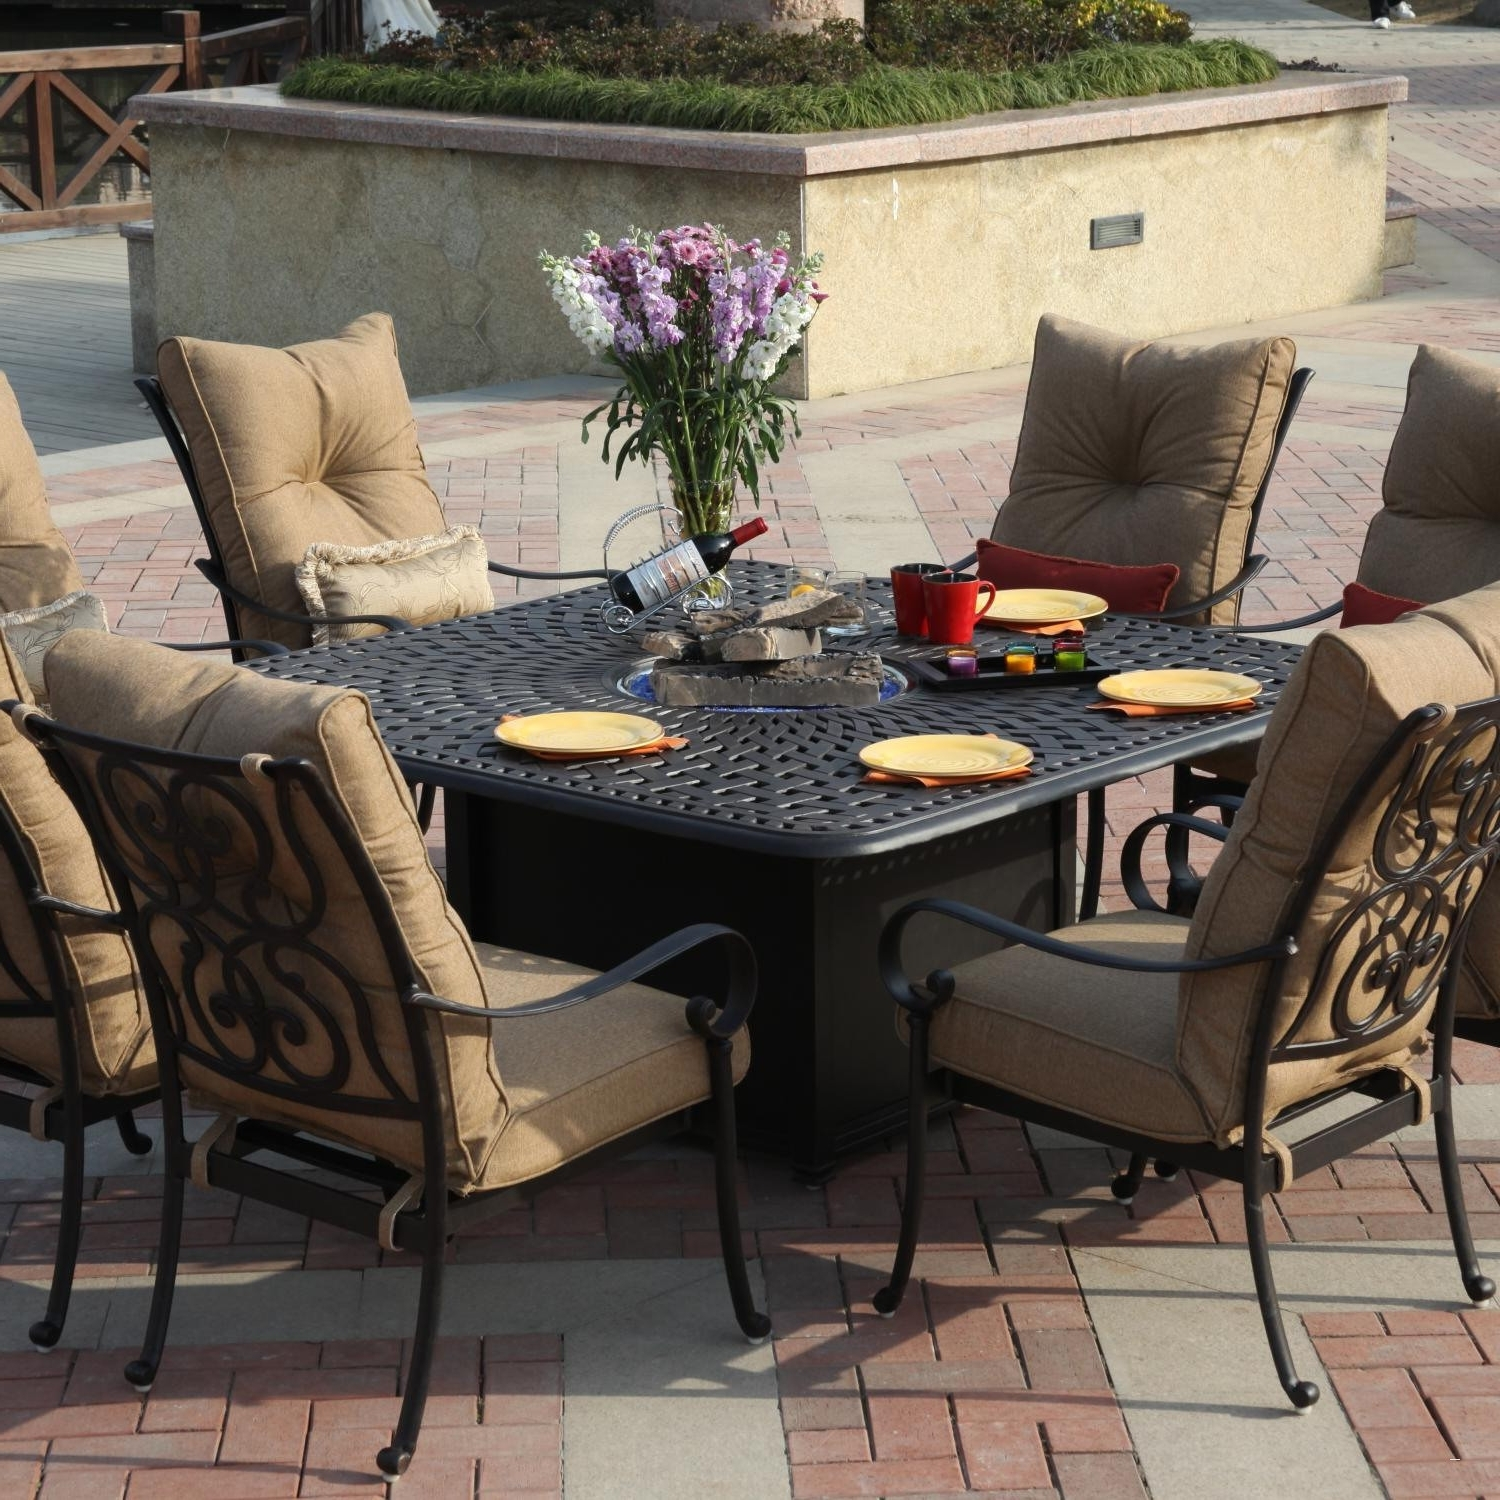 Patio Conversation Sets With Propane Fire Pit Intended For Best And Newest Patio Furniture Sets With Fire Pit Brilliant Sets Stone Harbor (View 16 of 20)